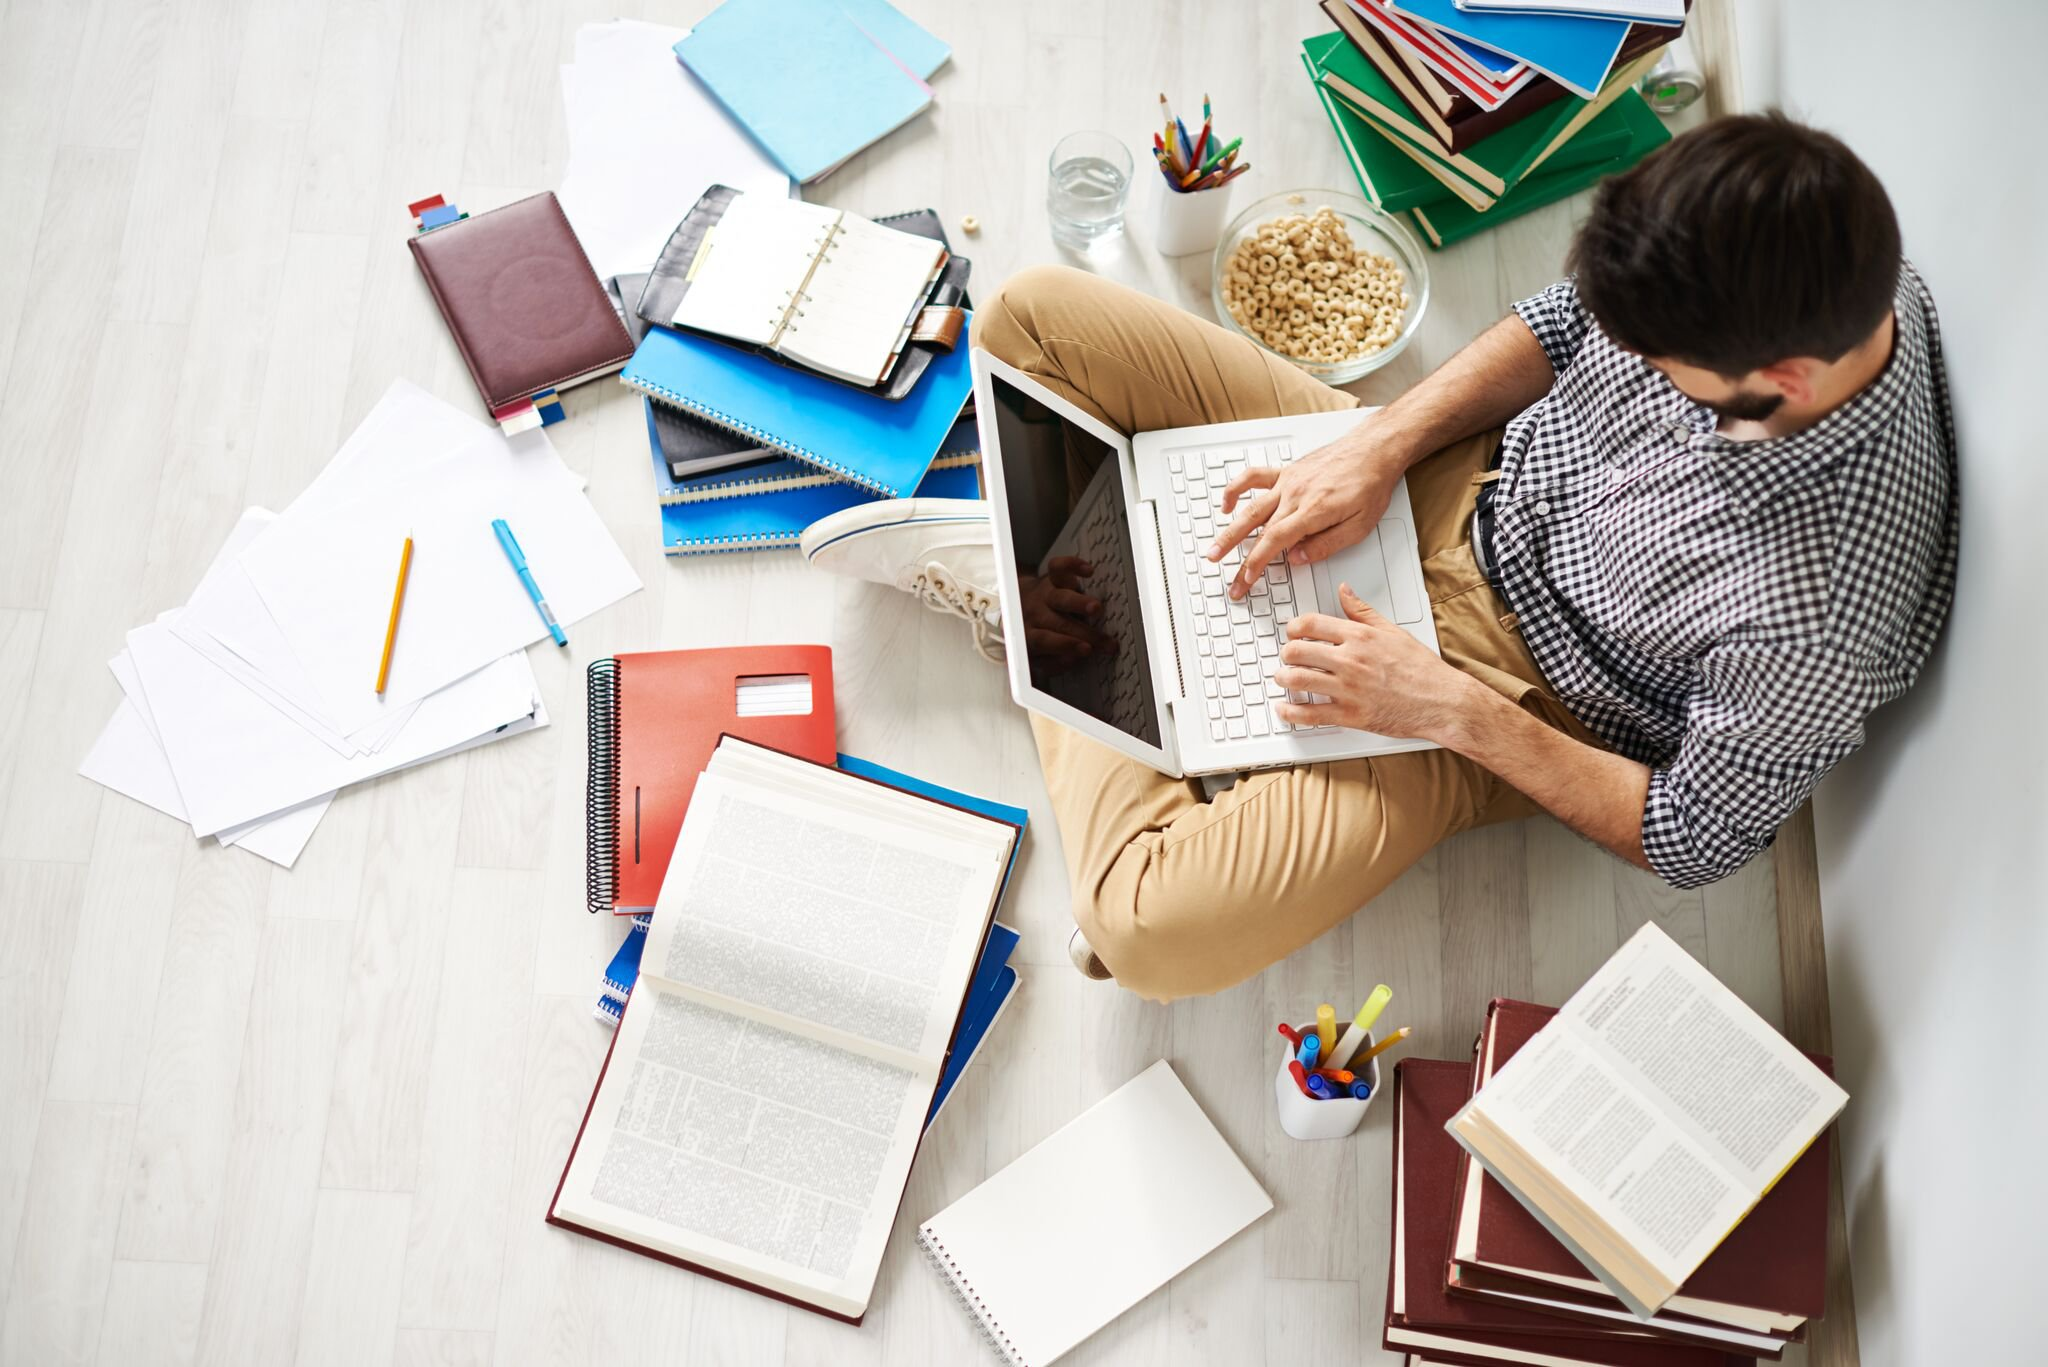 How Do I List My Activities on the Common Application?